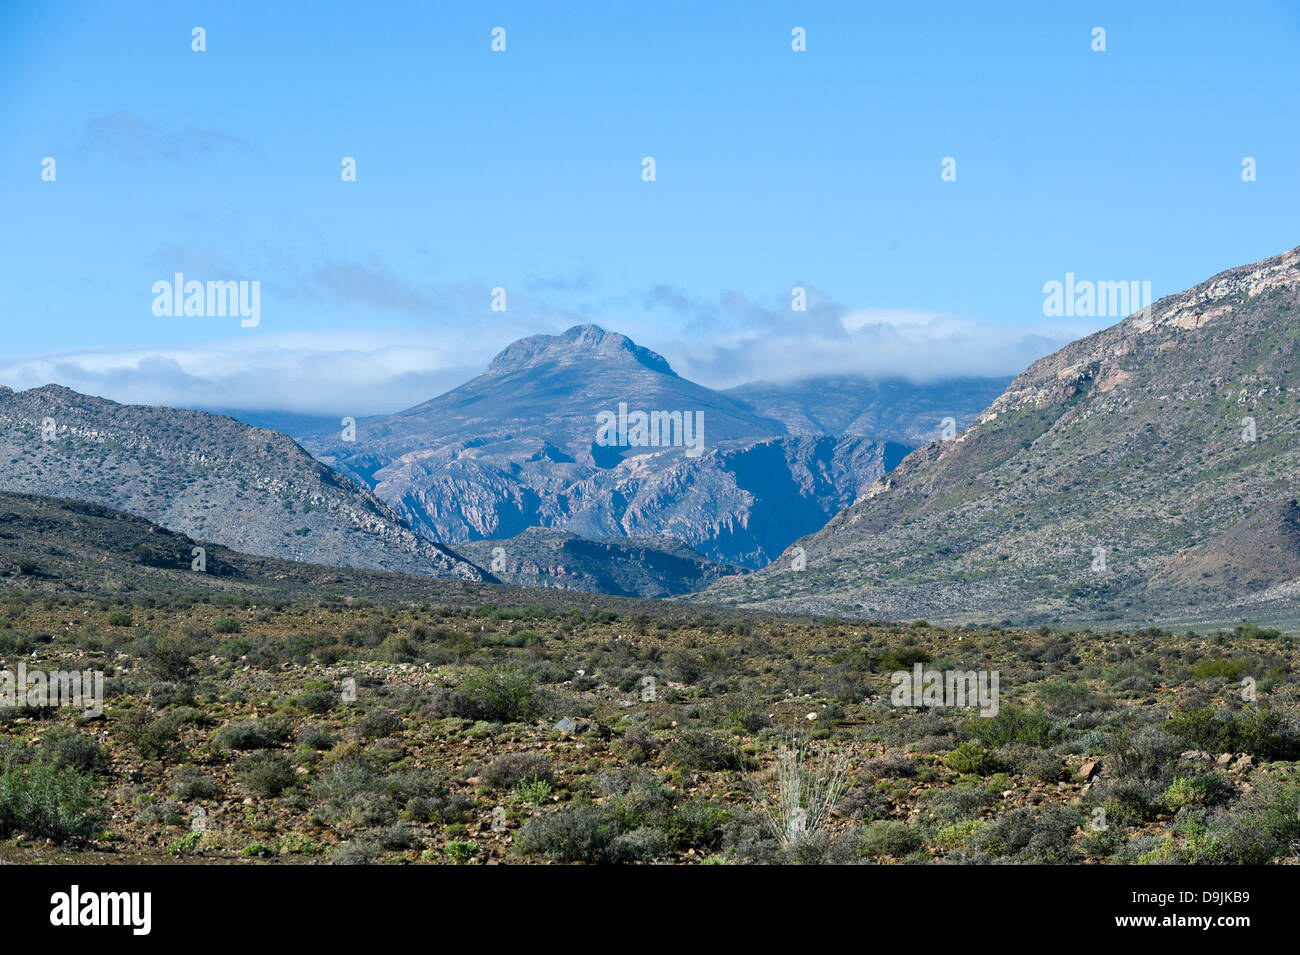 Karoo vegetation, mountains and house, Prince Albert, Western Cape, South Africa - Stock Image